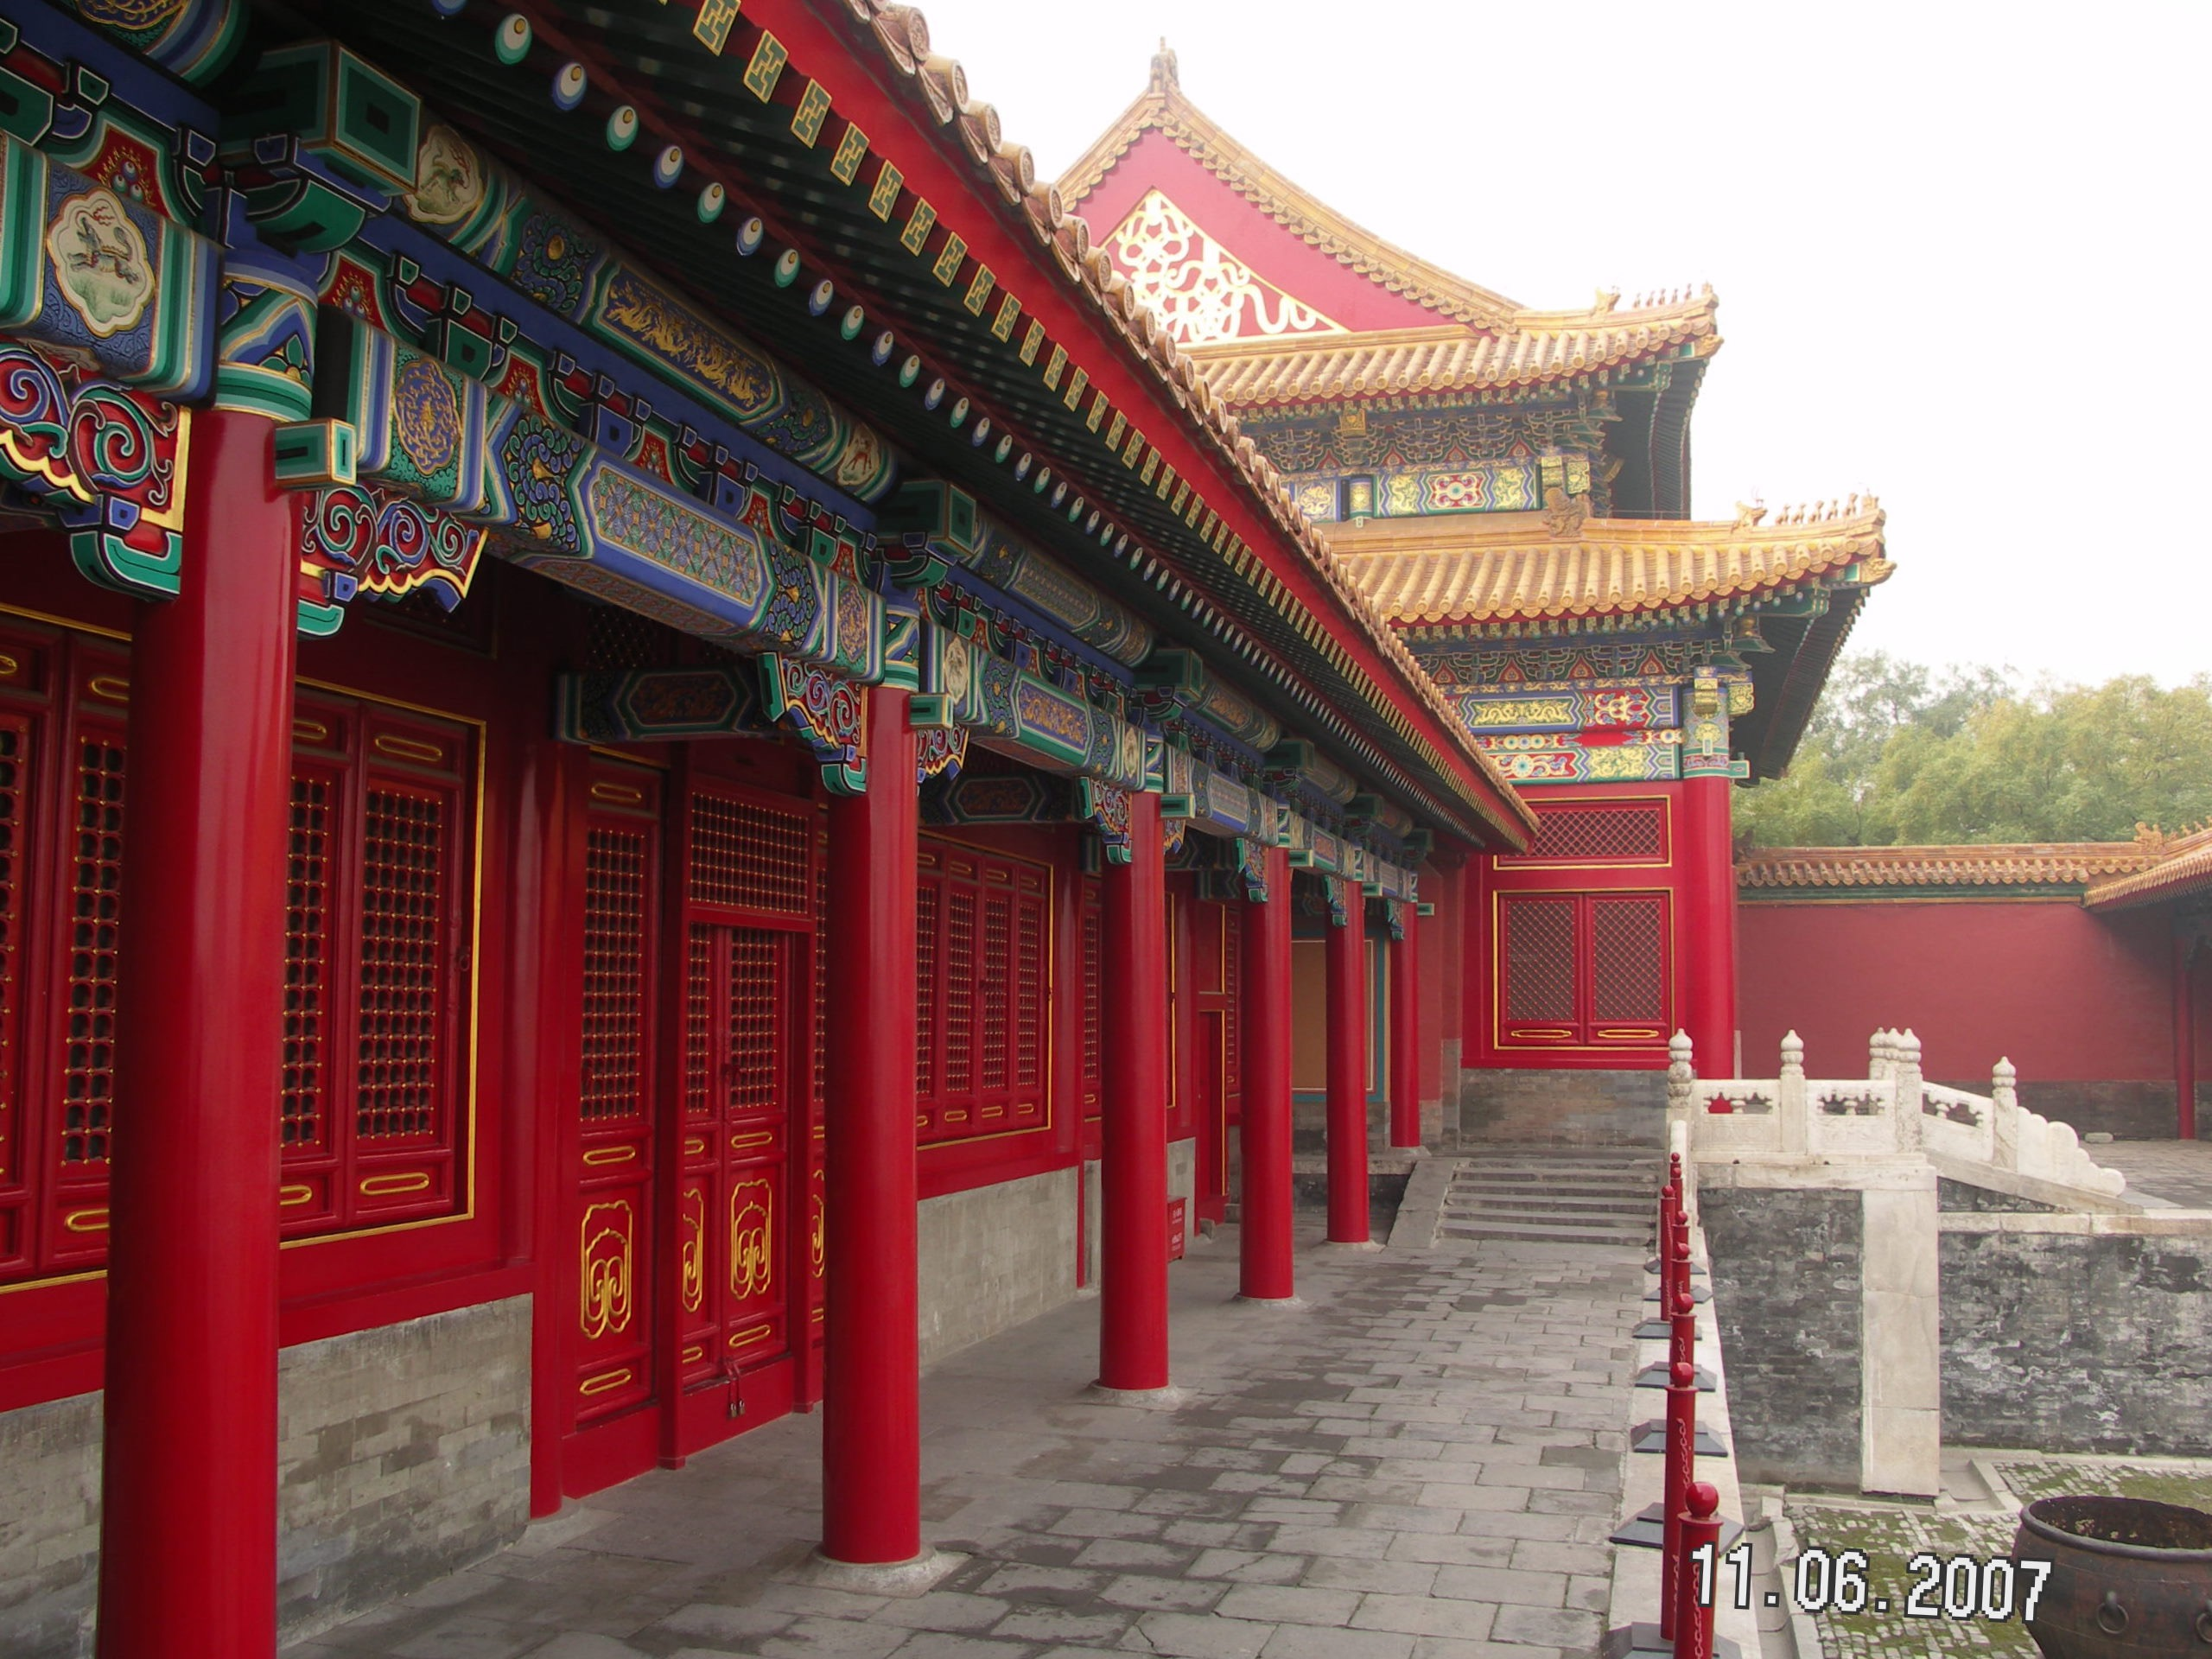 A day in the Forbidden City....how to show the architecture, the colors, the gardens, the bridges...and then the interior rooms all so breathtakingly beautiful?